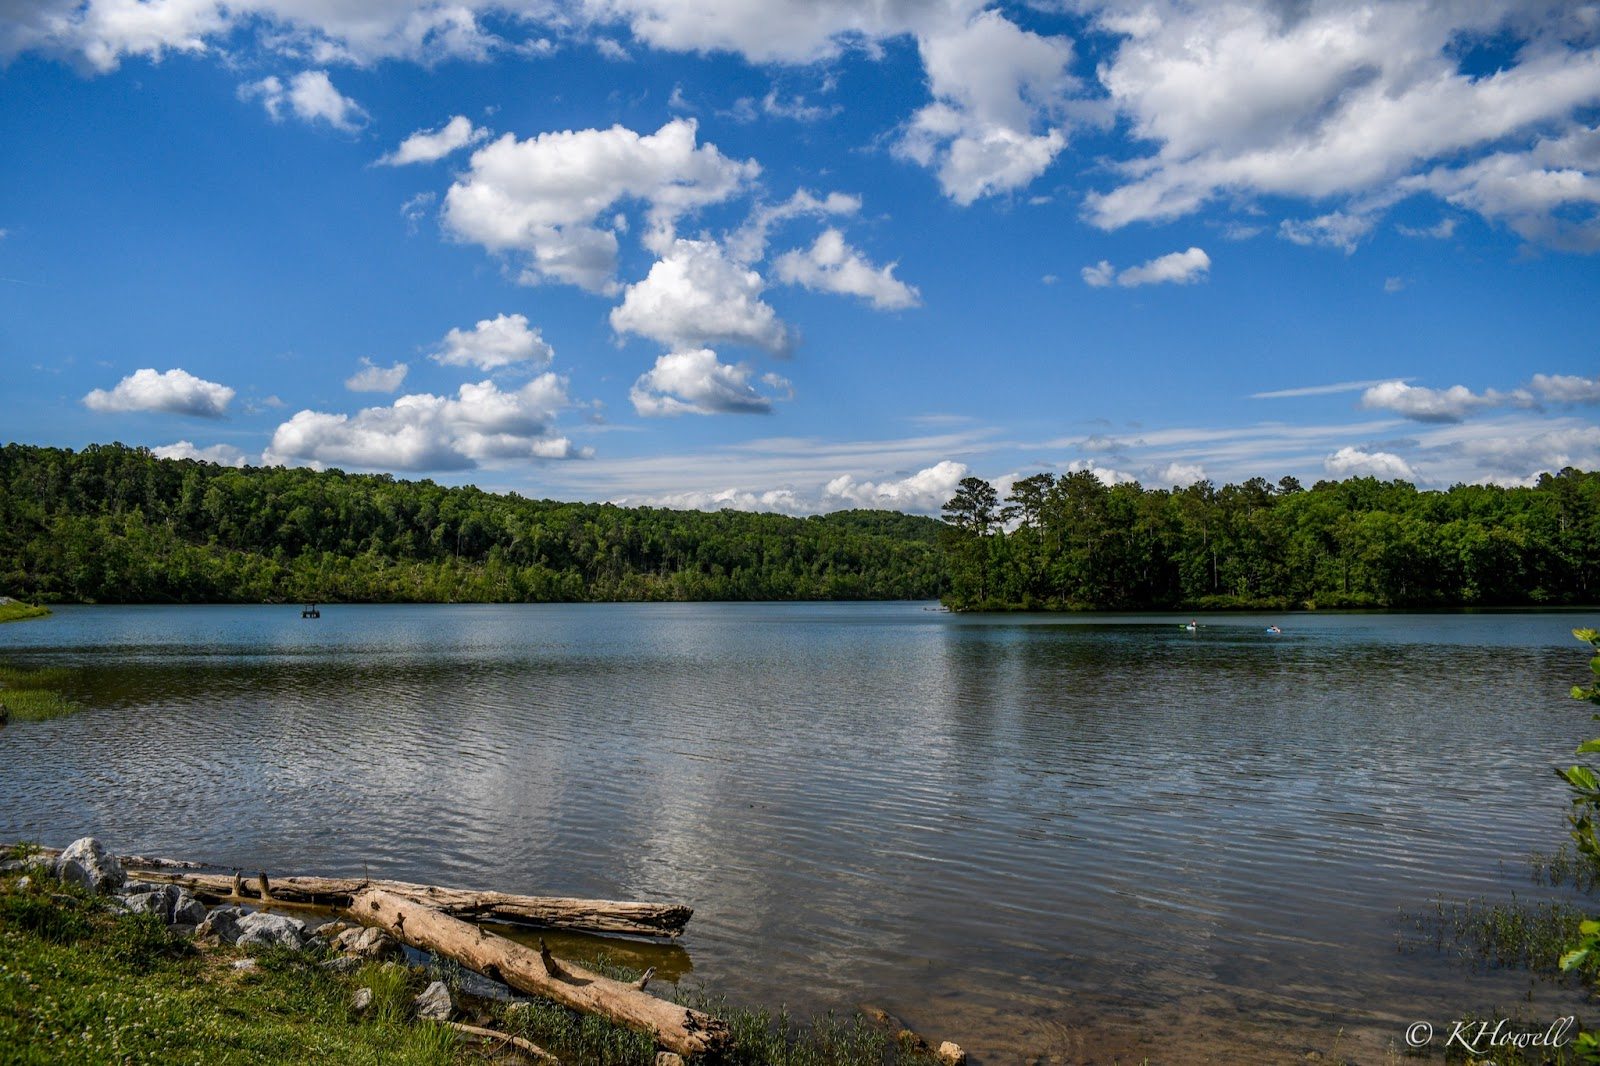 Lakes at Oak Mountain State Park in Pelham, Alabama. Located in the Greater Birmingham area